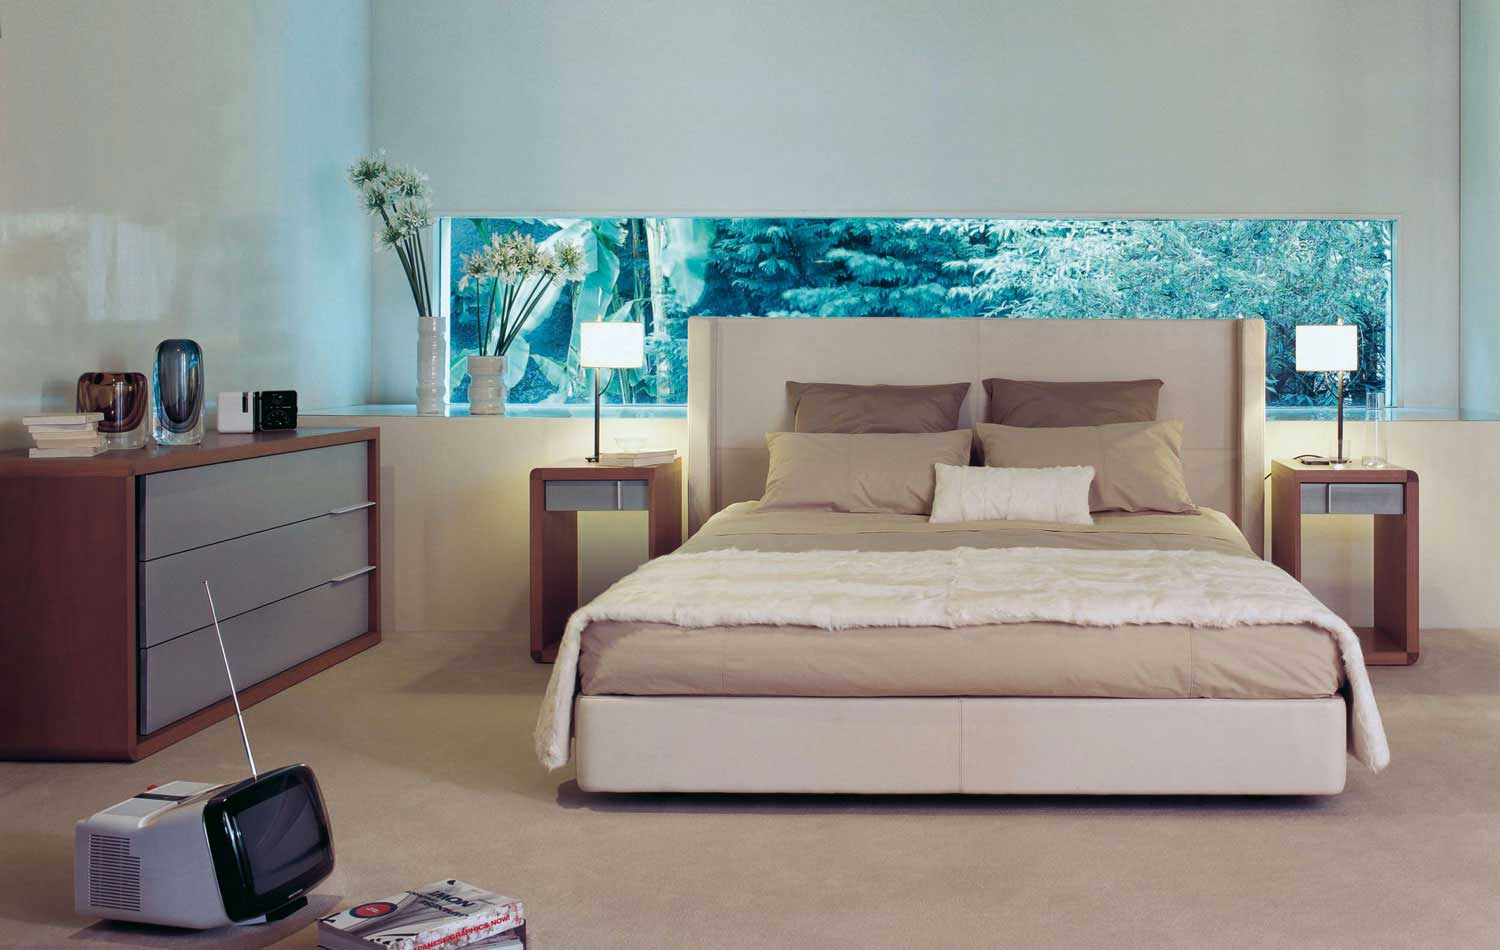 Bedrooms from roche bobois - Como decorar una habitacion ...